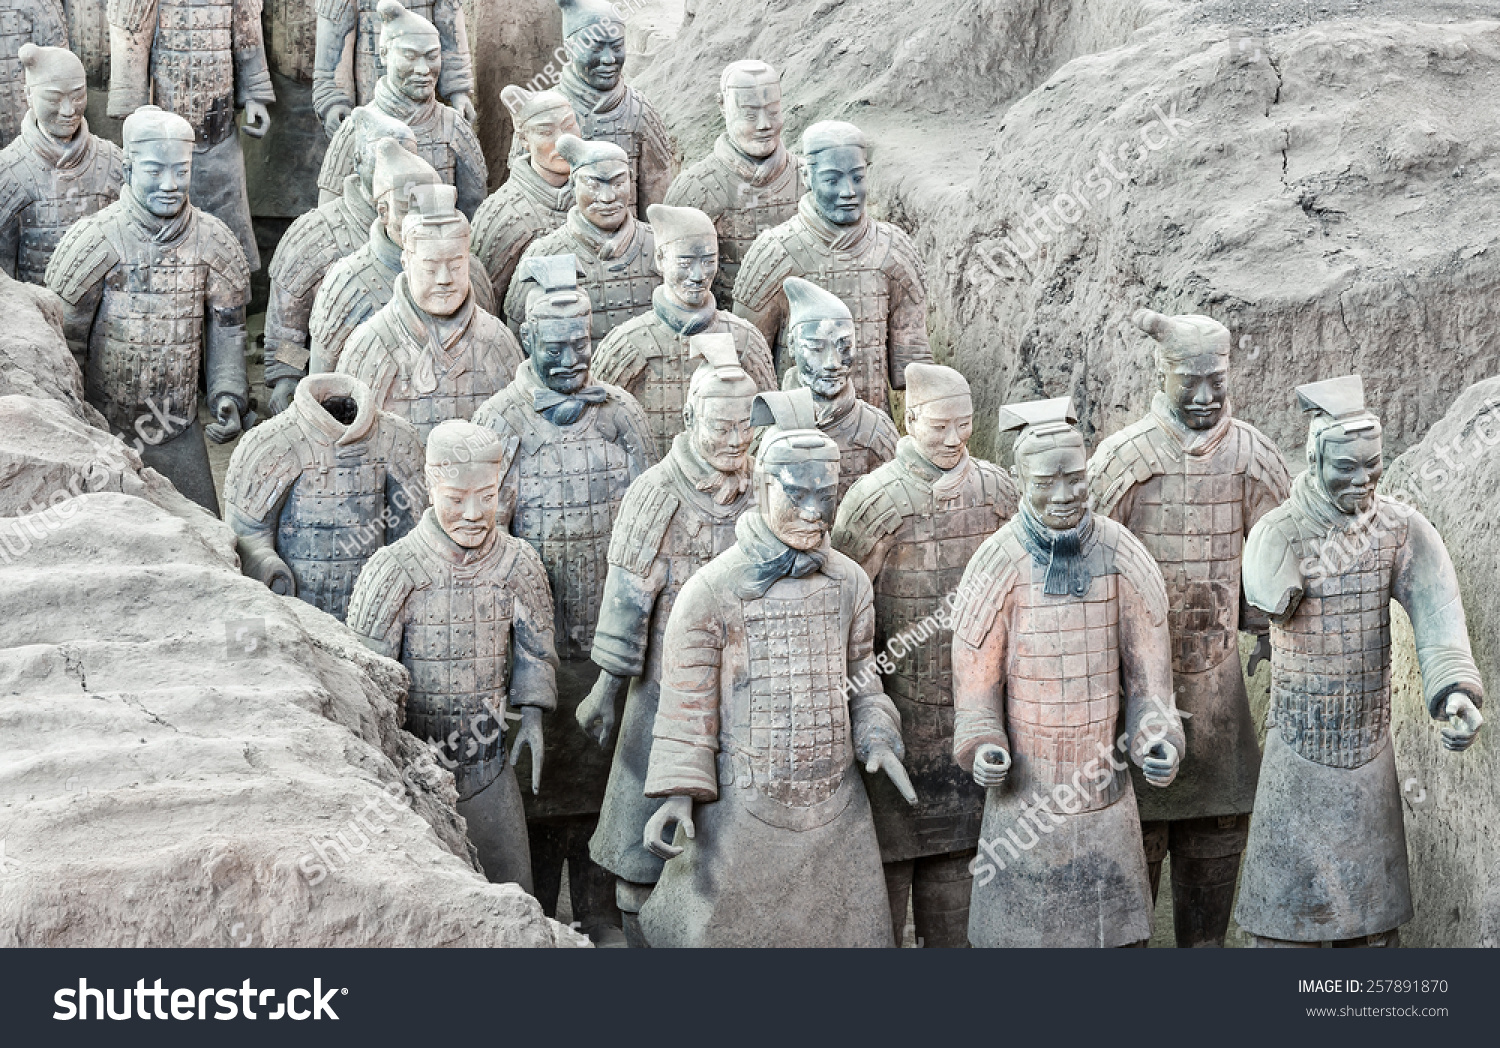 XIAN APRIL 9 exhibition of the famous Chinese Terracotta Warriors on April 9 2014 in Xian China The terracotta warriors are made in 210-209 BCE to protect the emperor in his afterlife